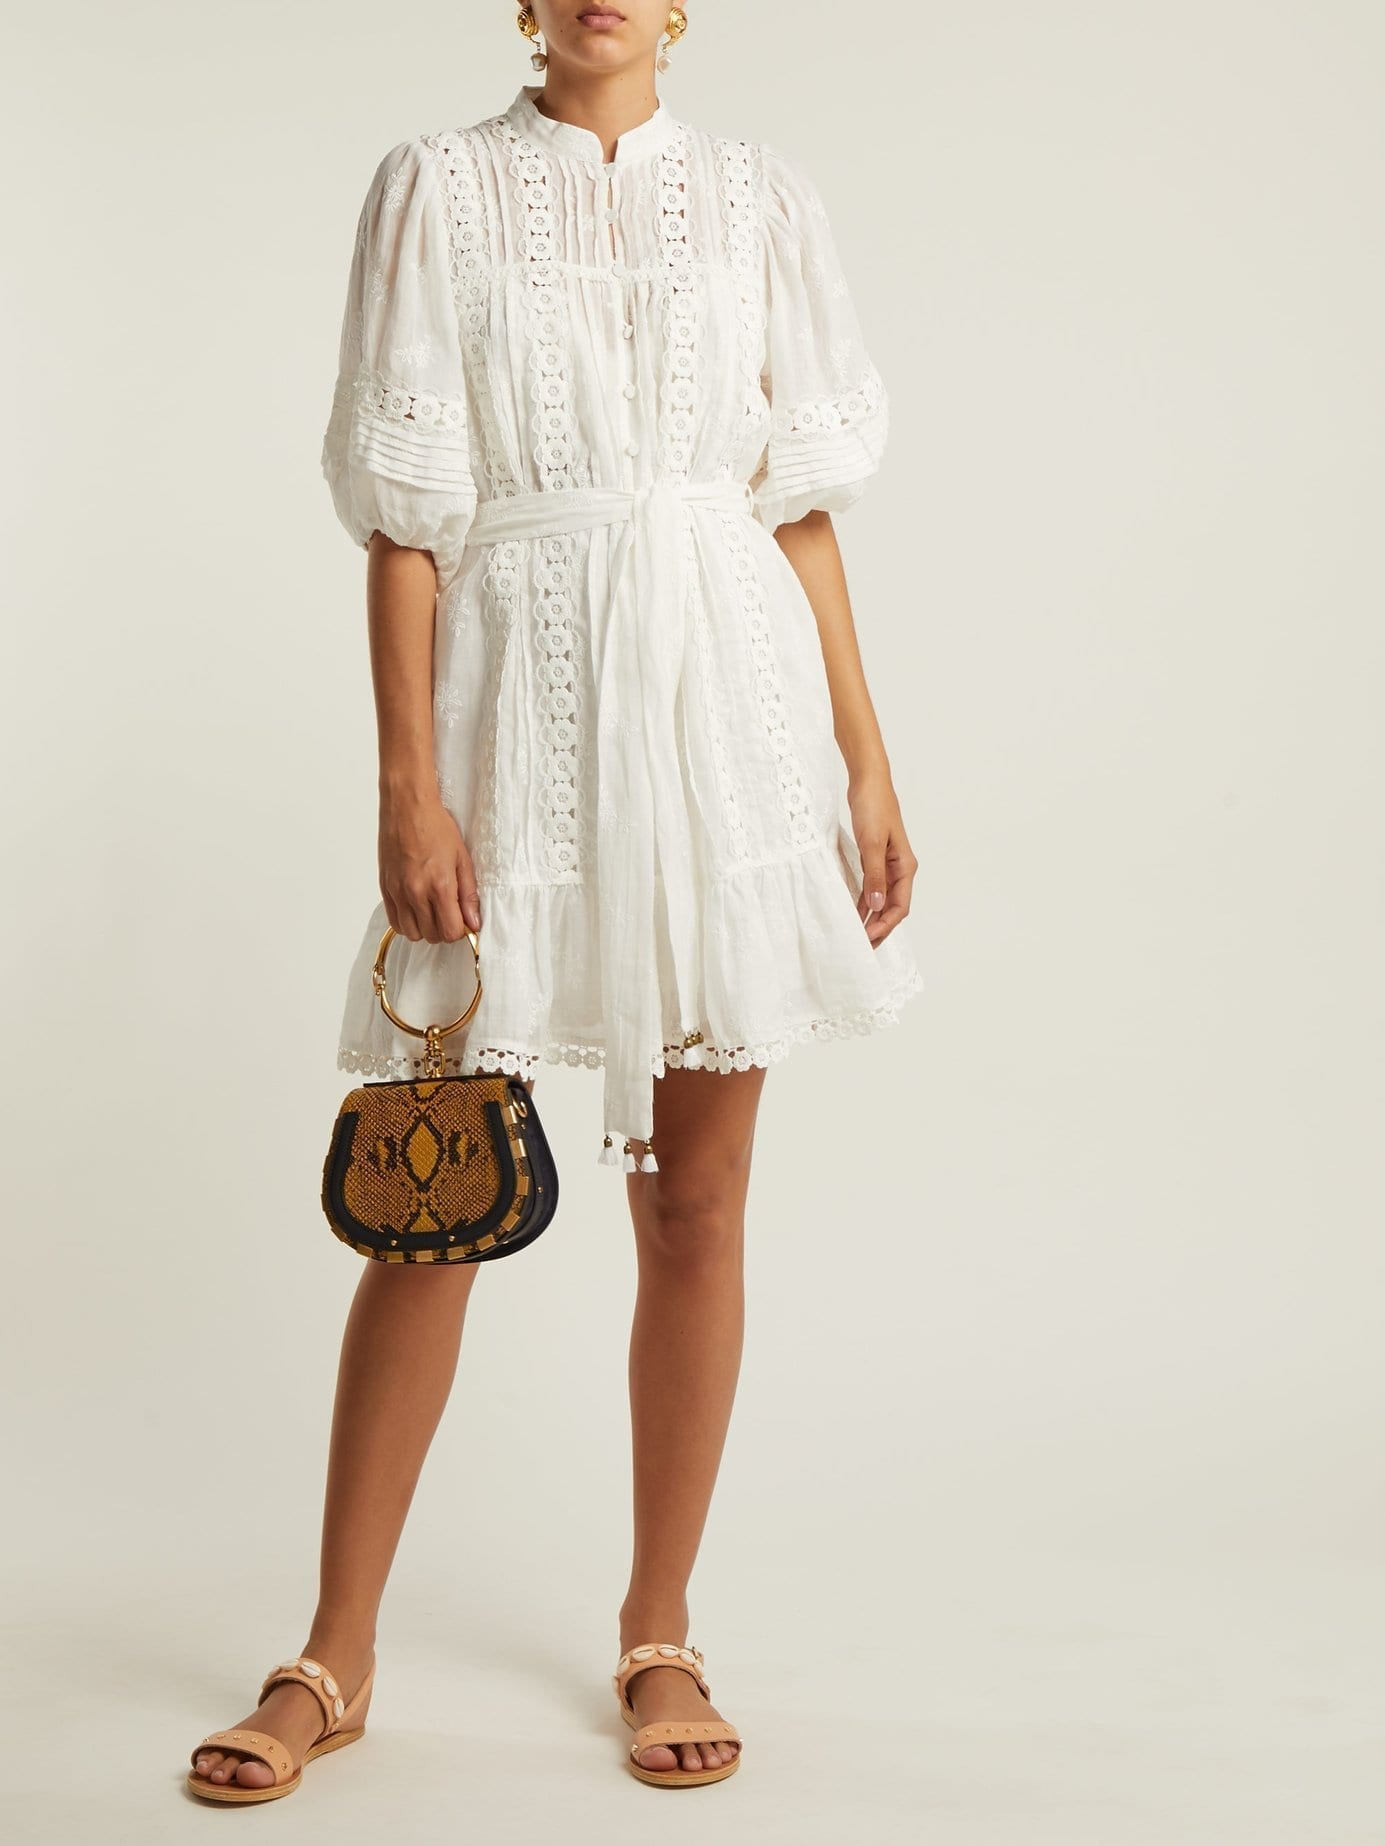 ZIMMERMANN Castile Flower Lace-trimmed Voile White Dress